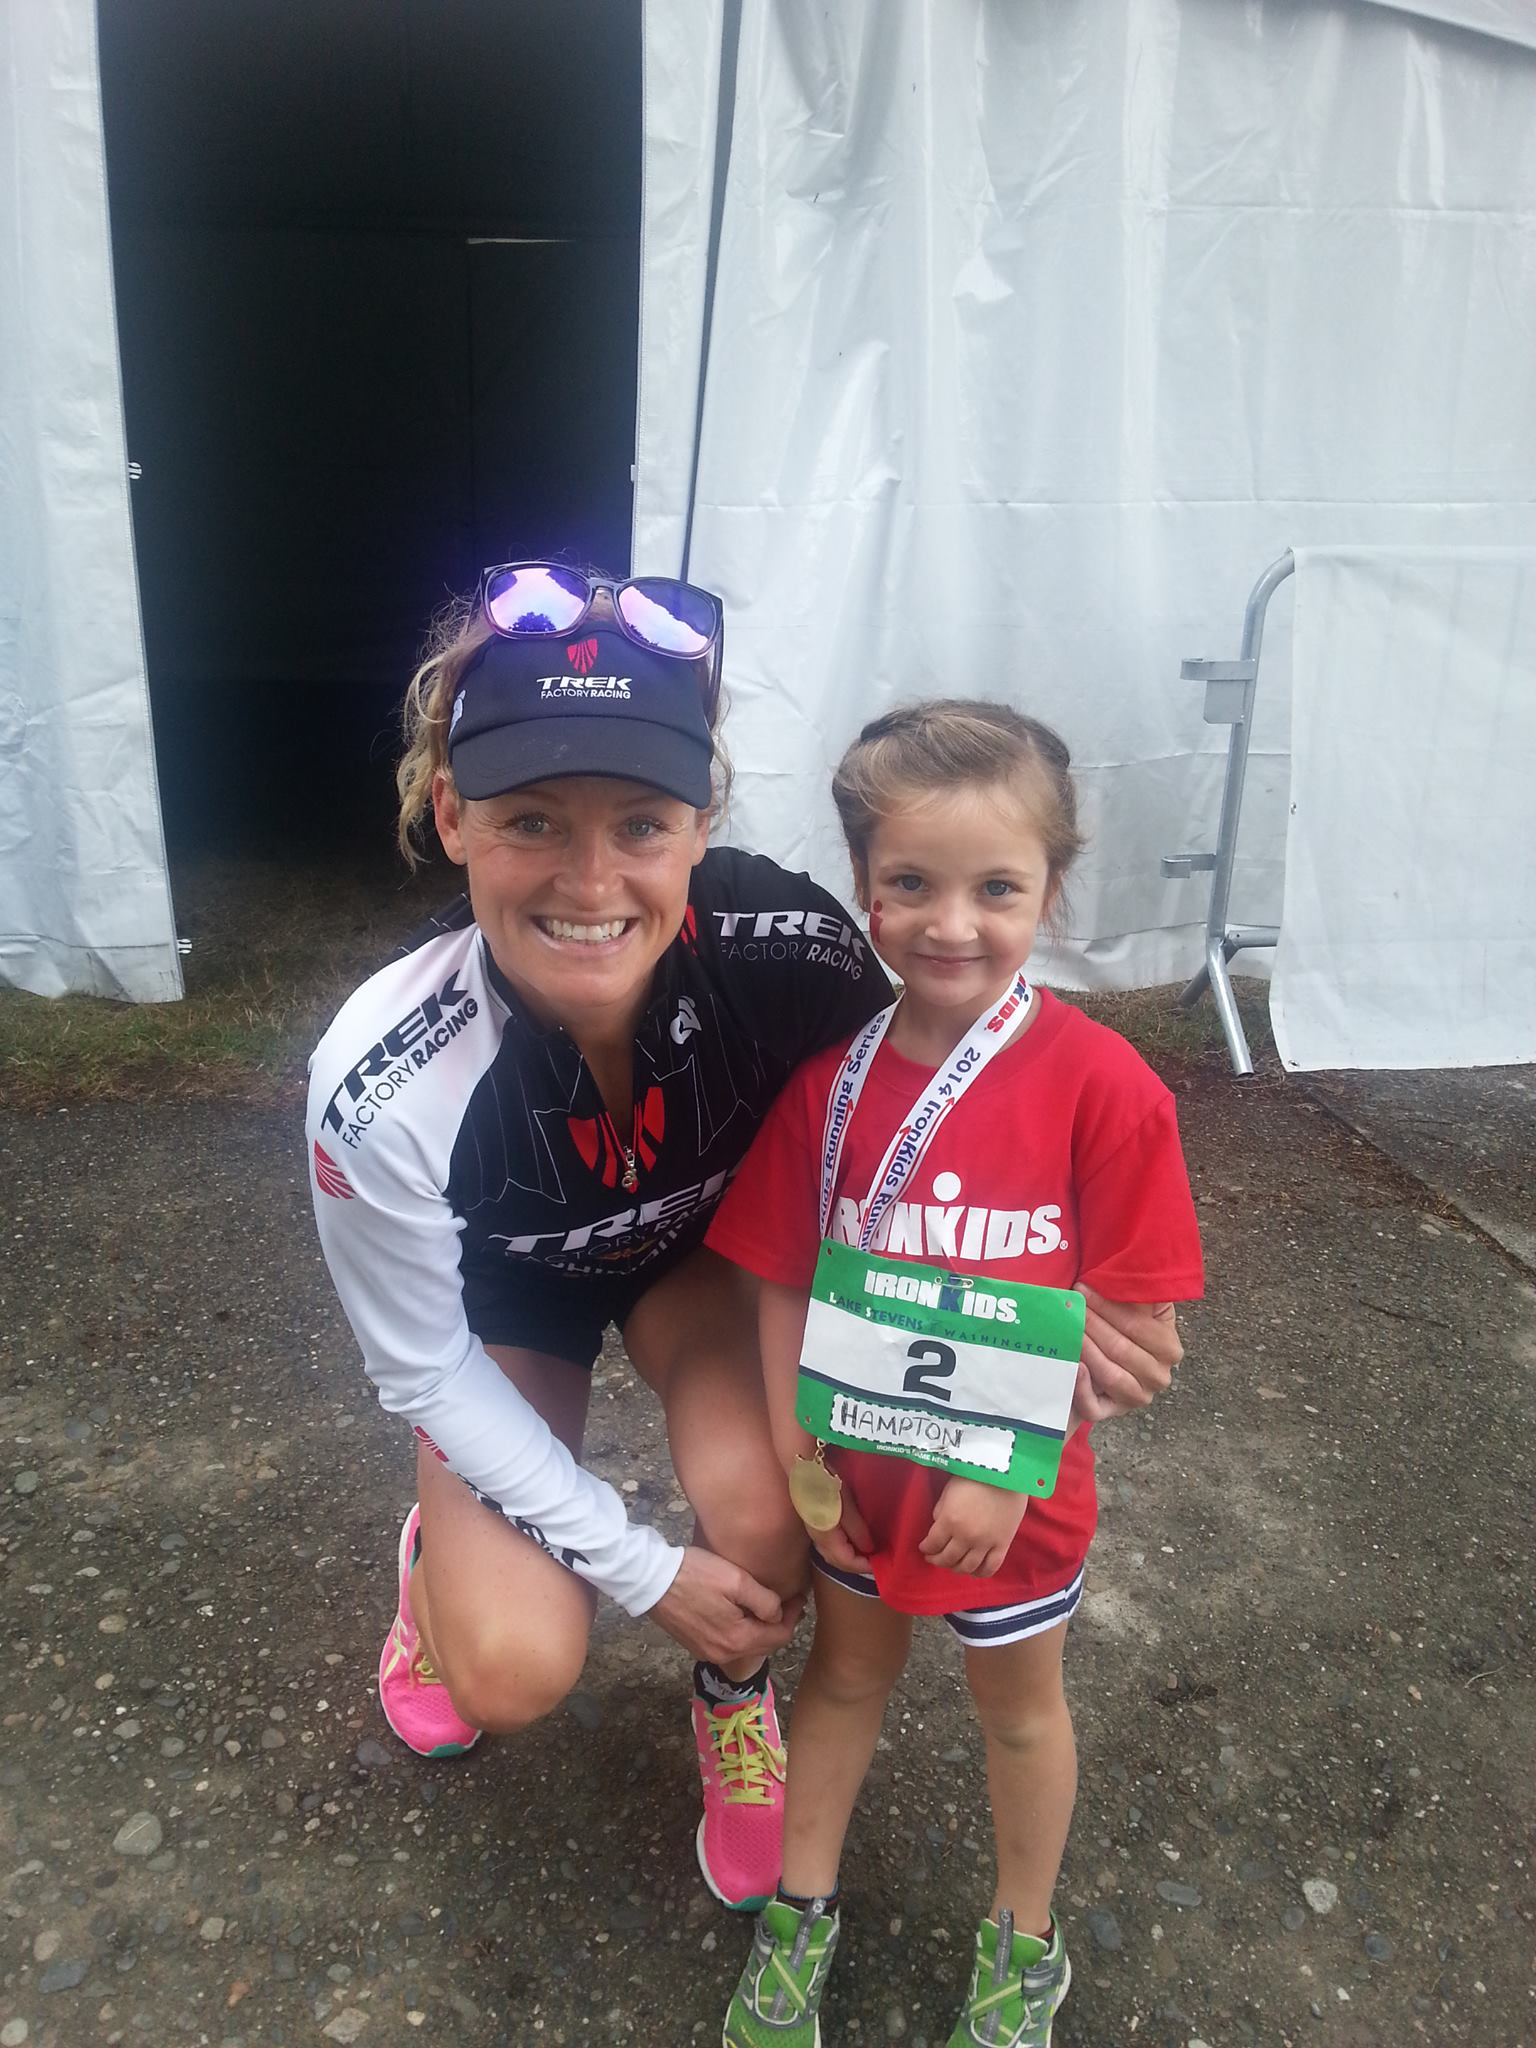 Kid takes part in triathlon